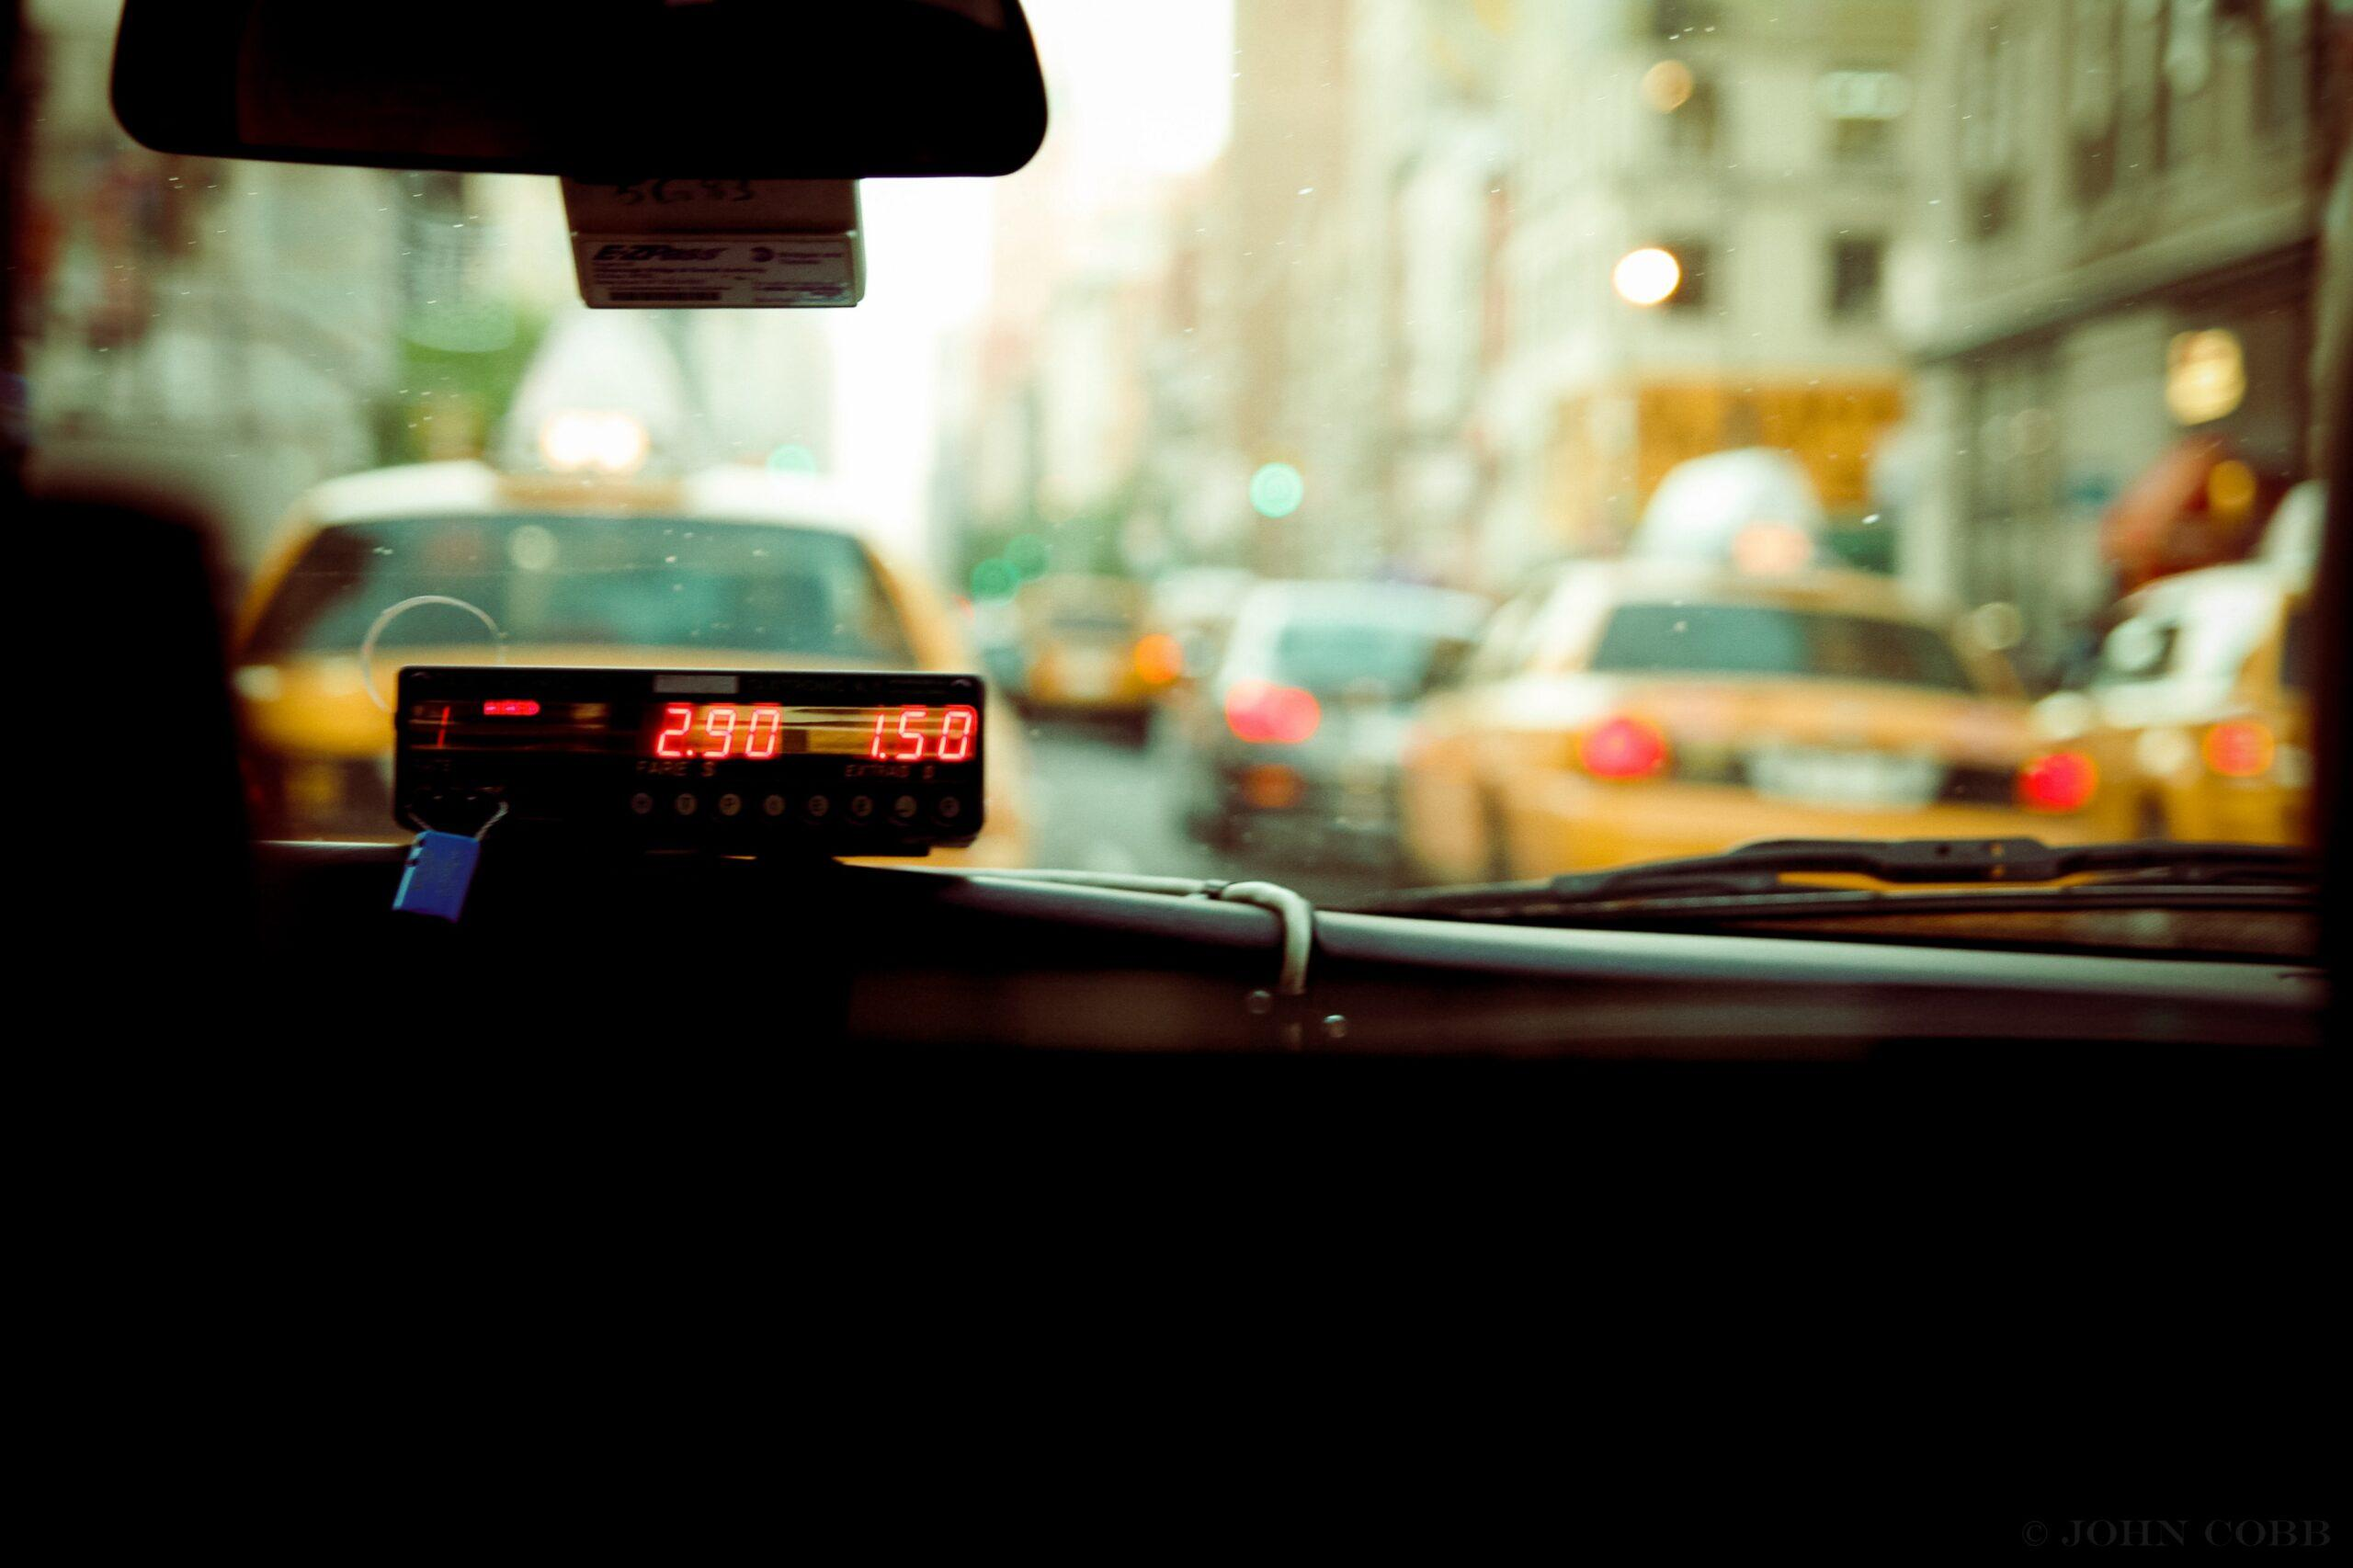 Taxi from inside